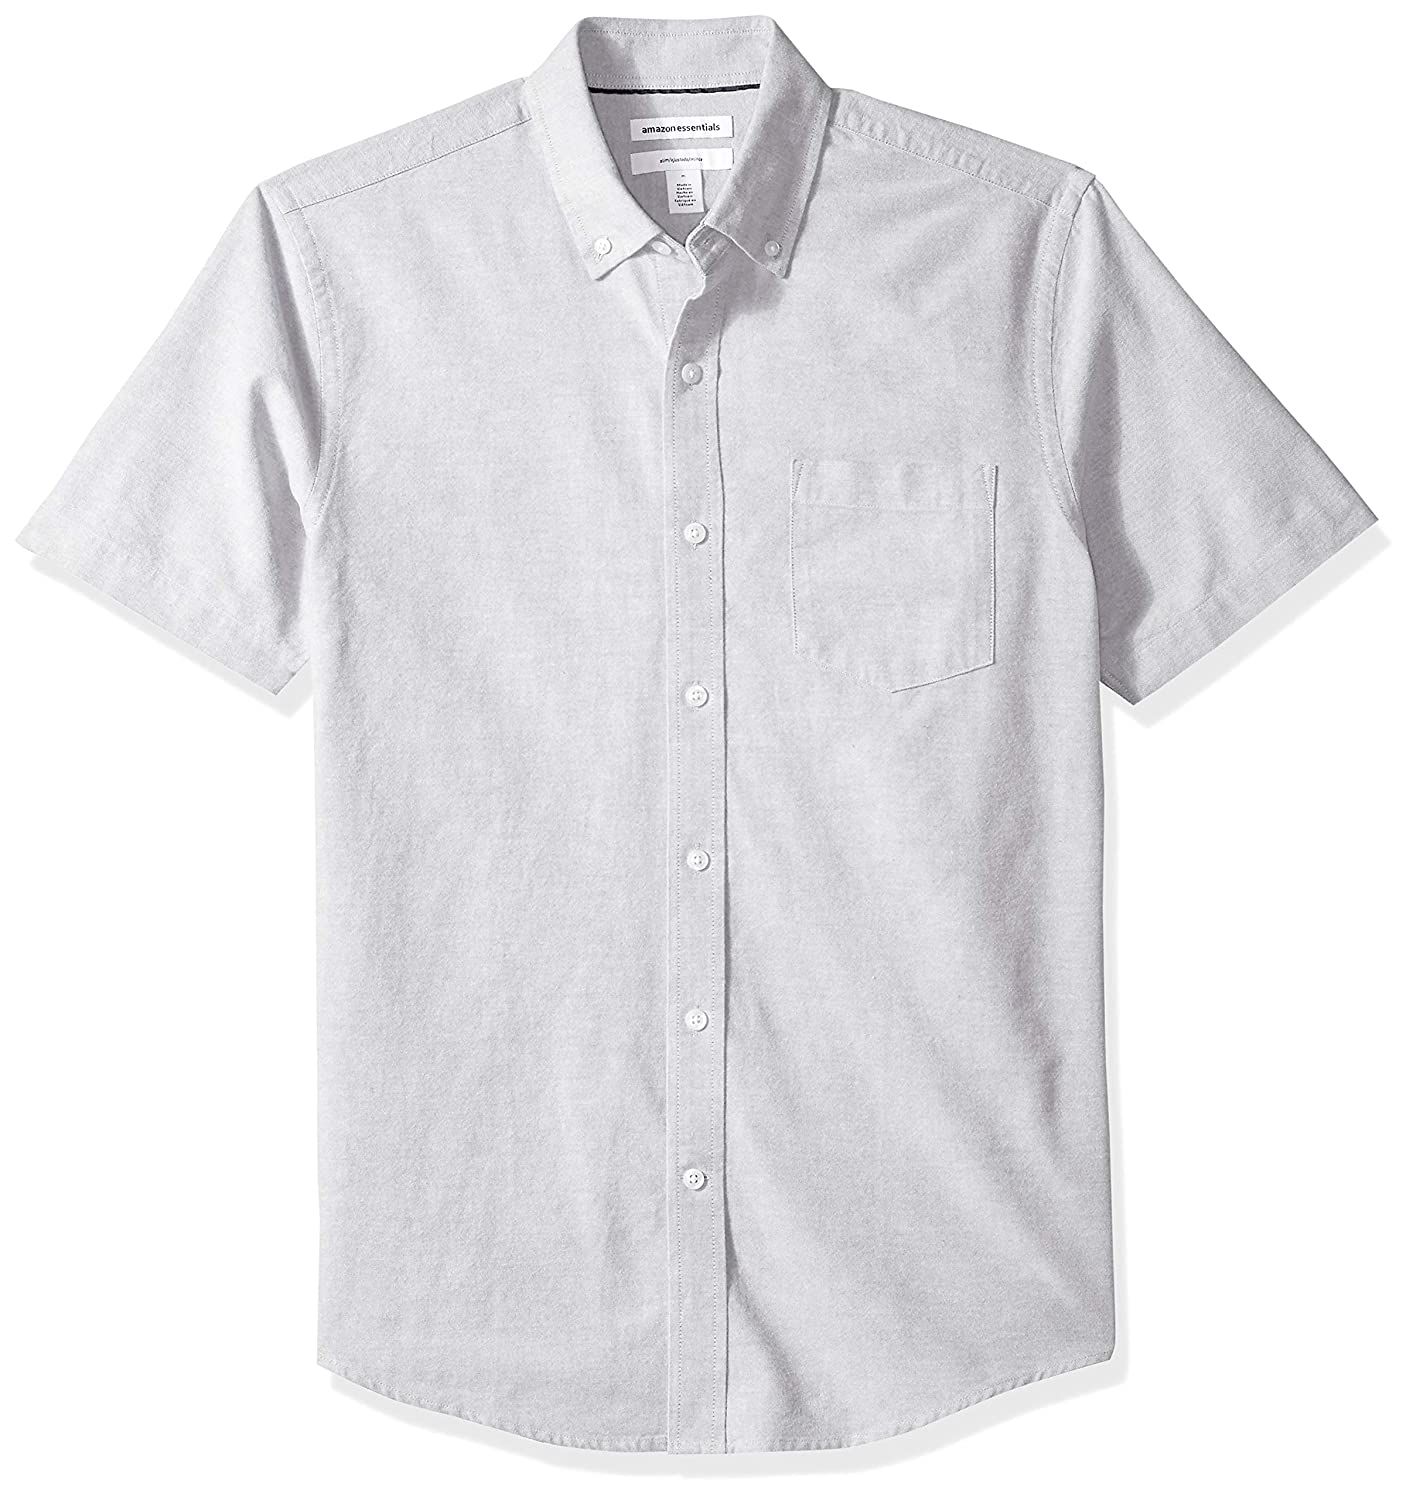 Essentials Slim-fit Short-Sleeve Solid Pocket Oxford